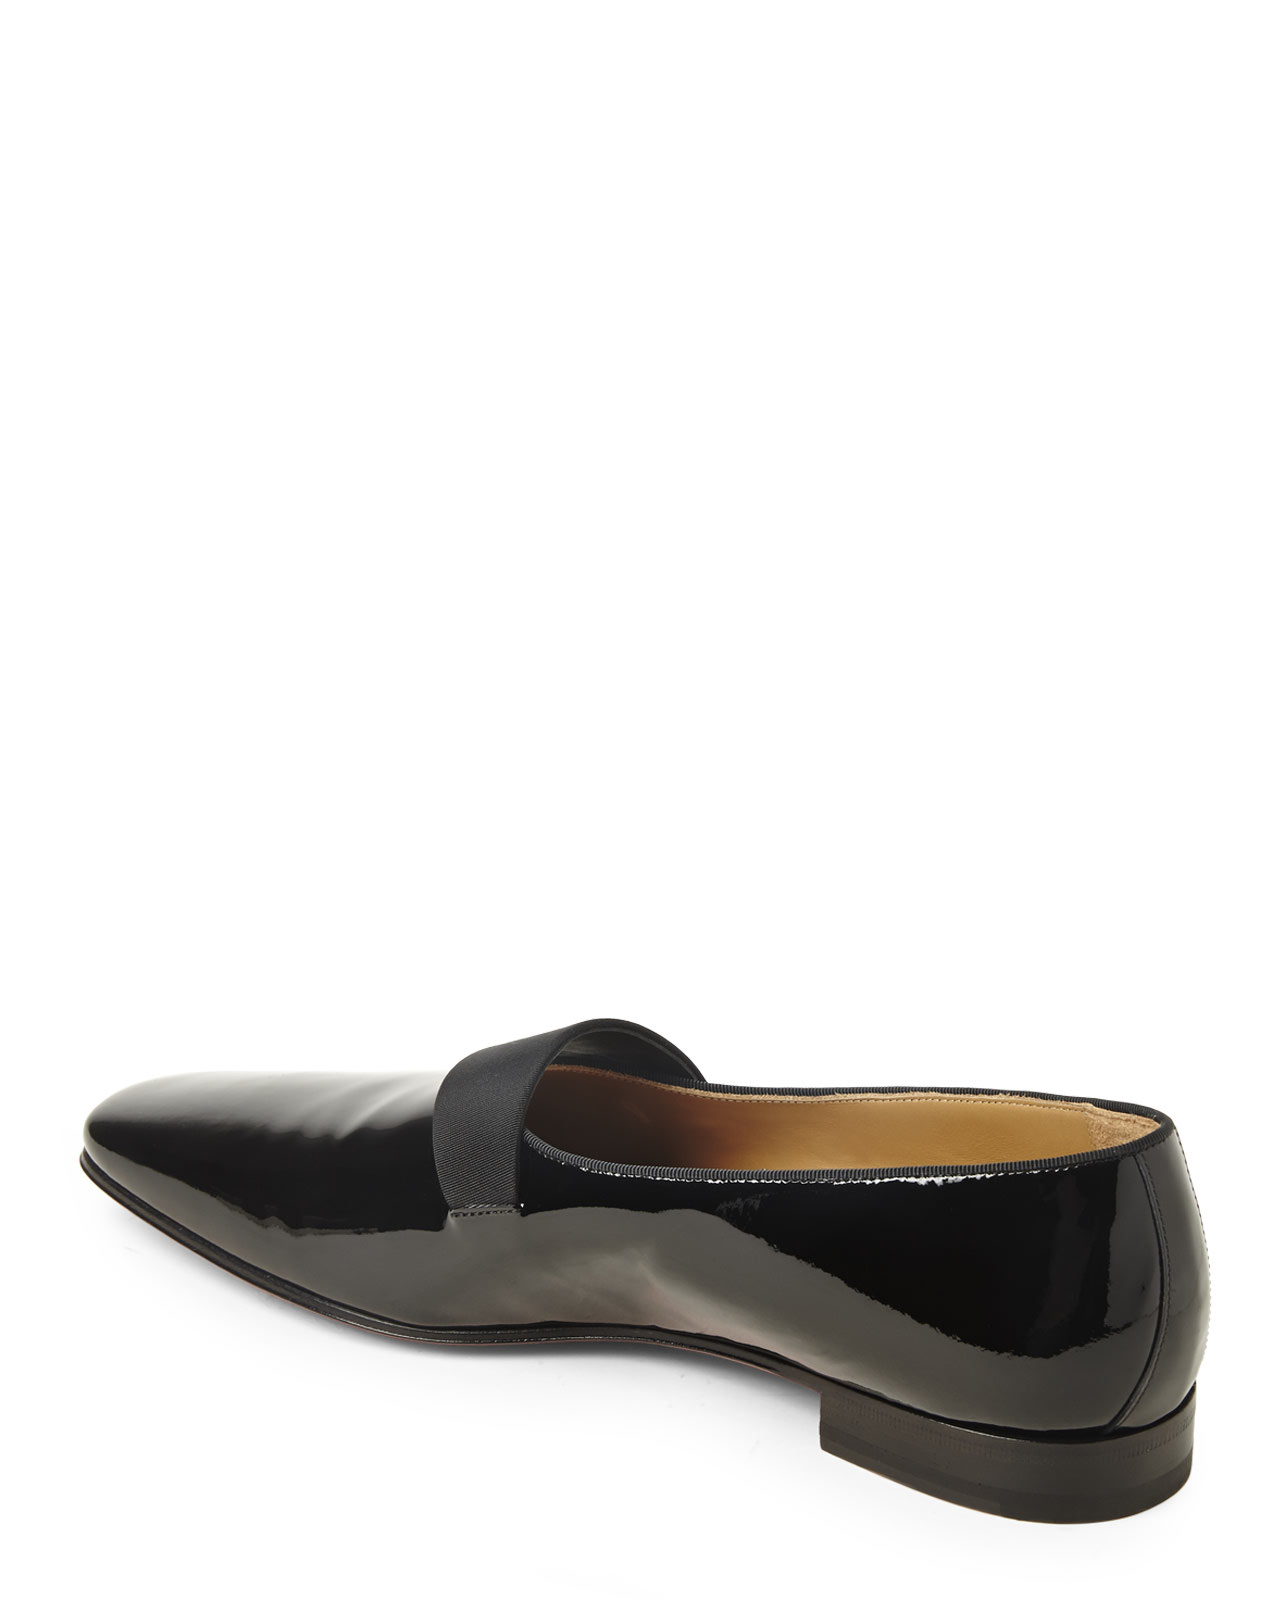 8c66365dc15 ... coupon lyst christian louboutin black patent smoker flats in black for  men 64192 b2511